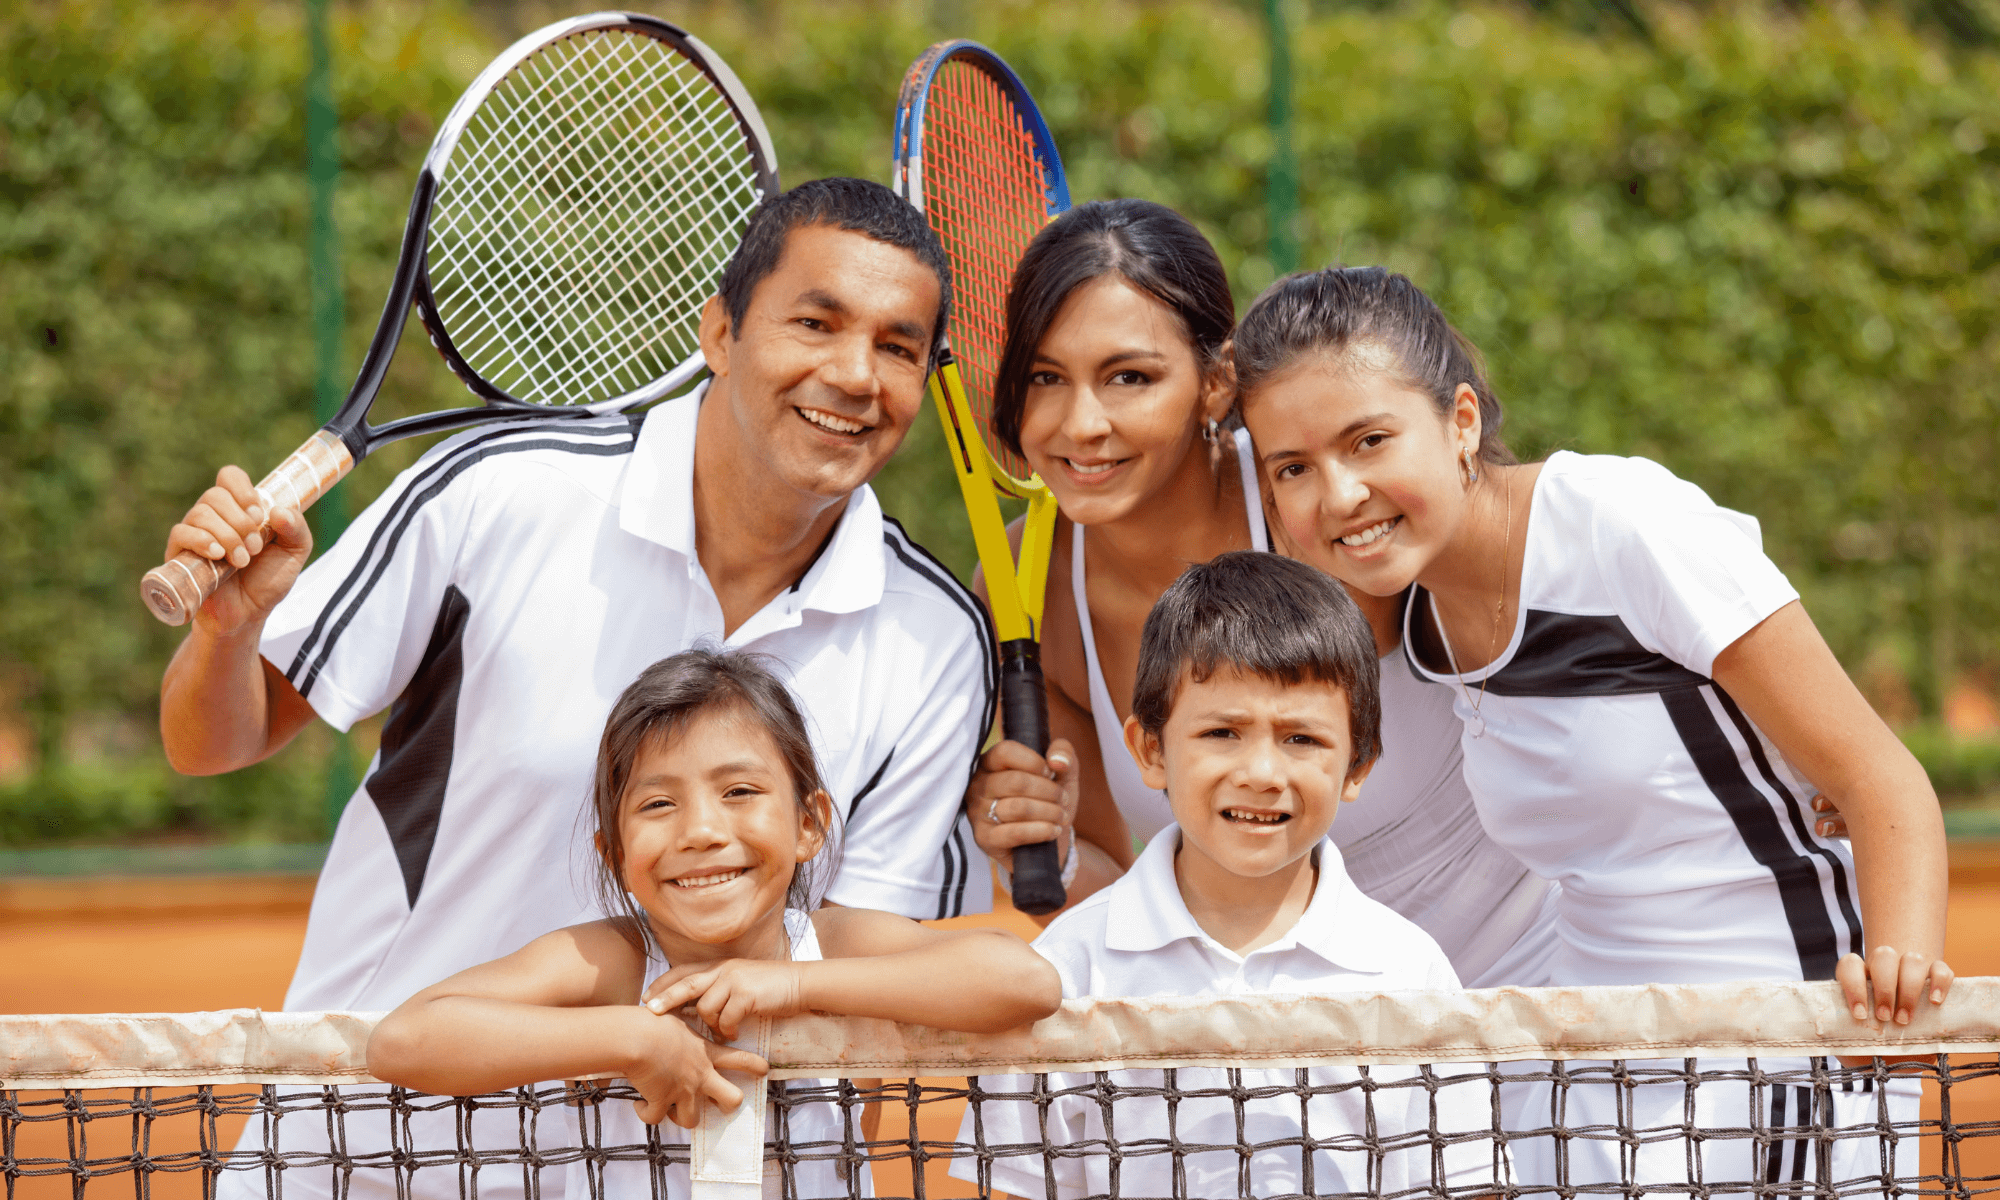 a family playing tennis together